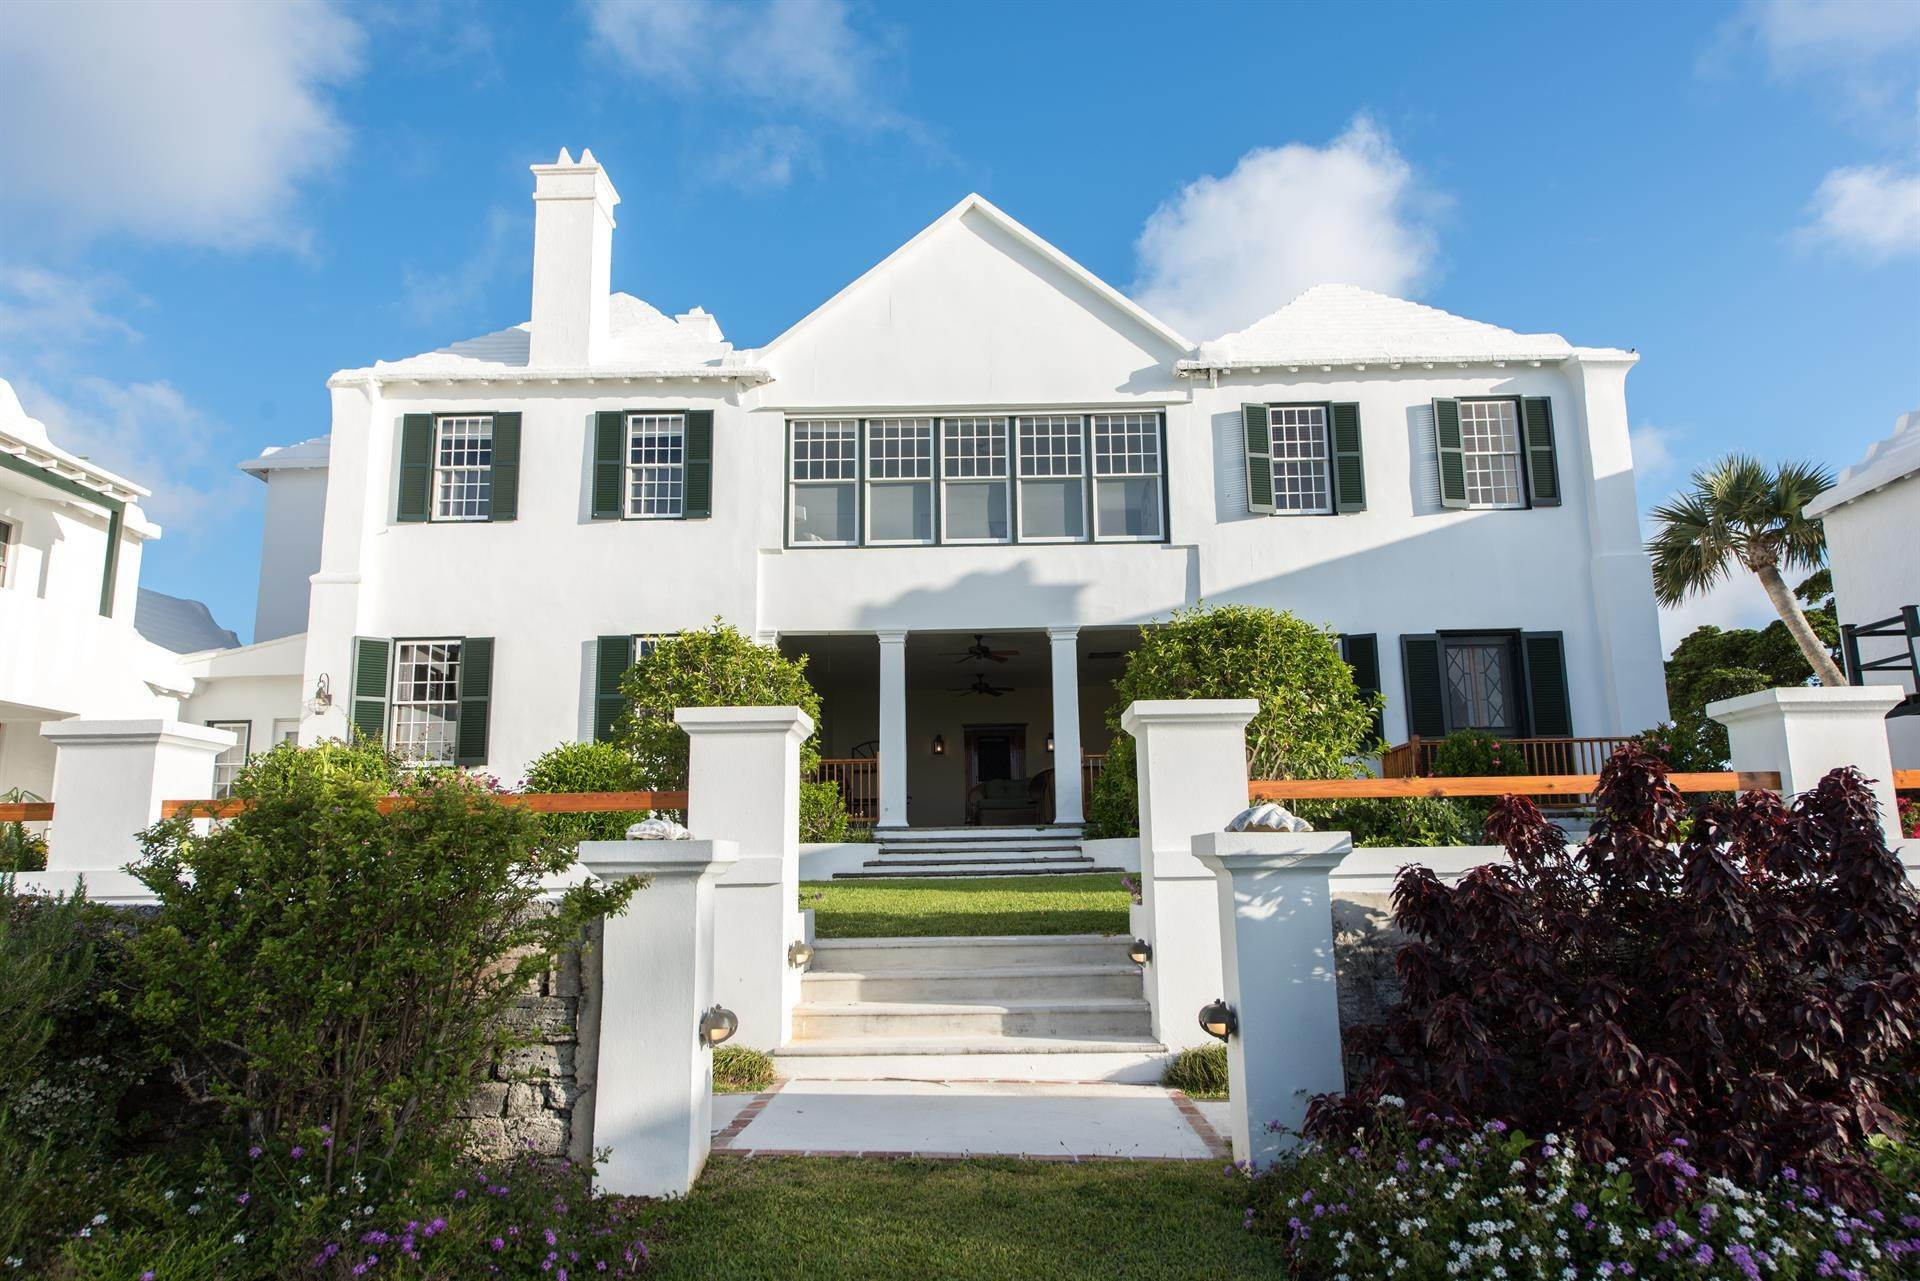 21. 庄园,地产 为 销售 在 Bellevue Estate At Grape Bay Beach Bellevue Estate At Grape Bay Beach, 6 Bellevue Drive,Bermuda – Sinclair Realty